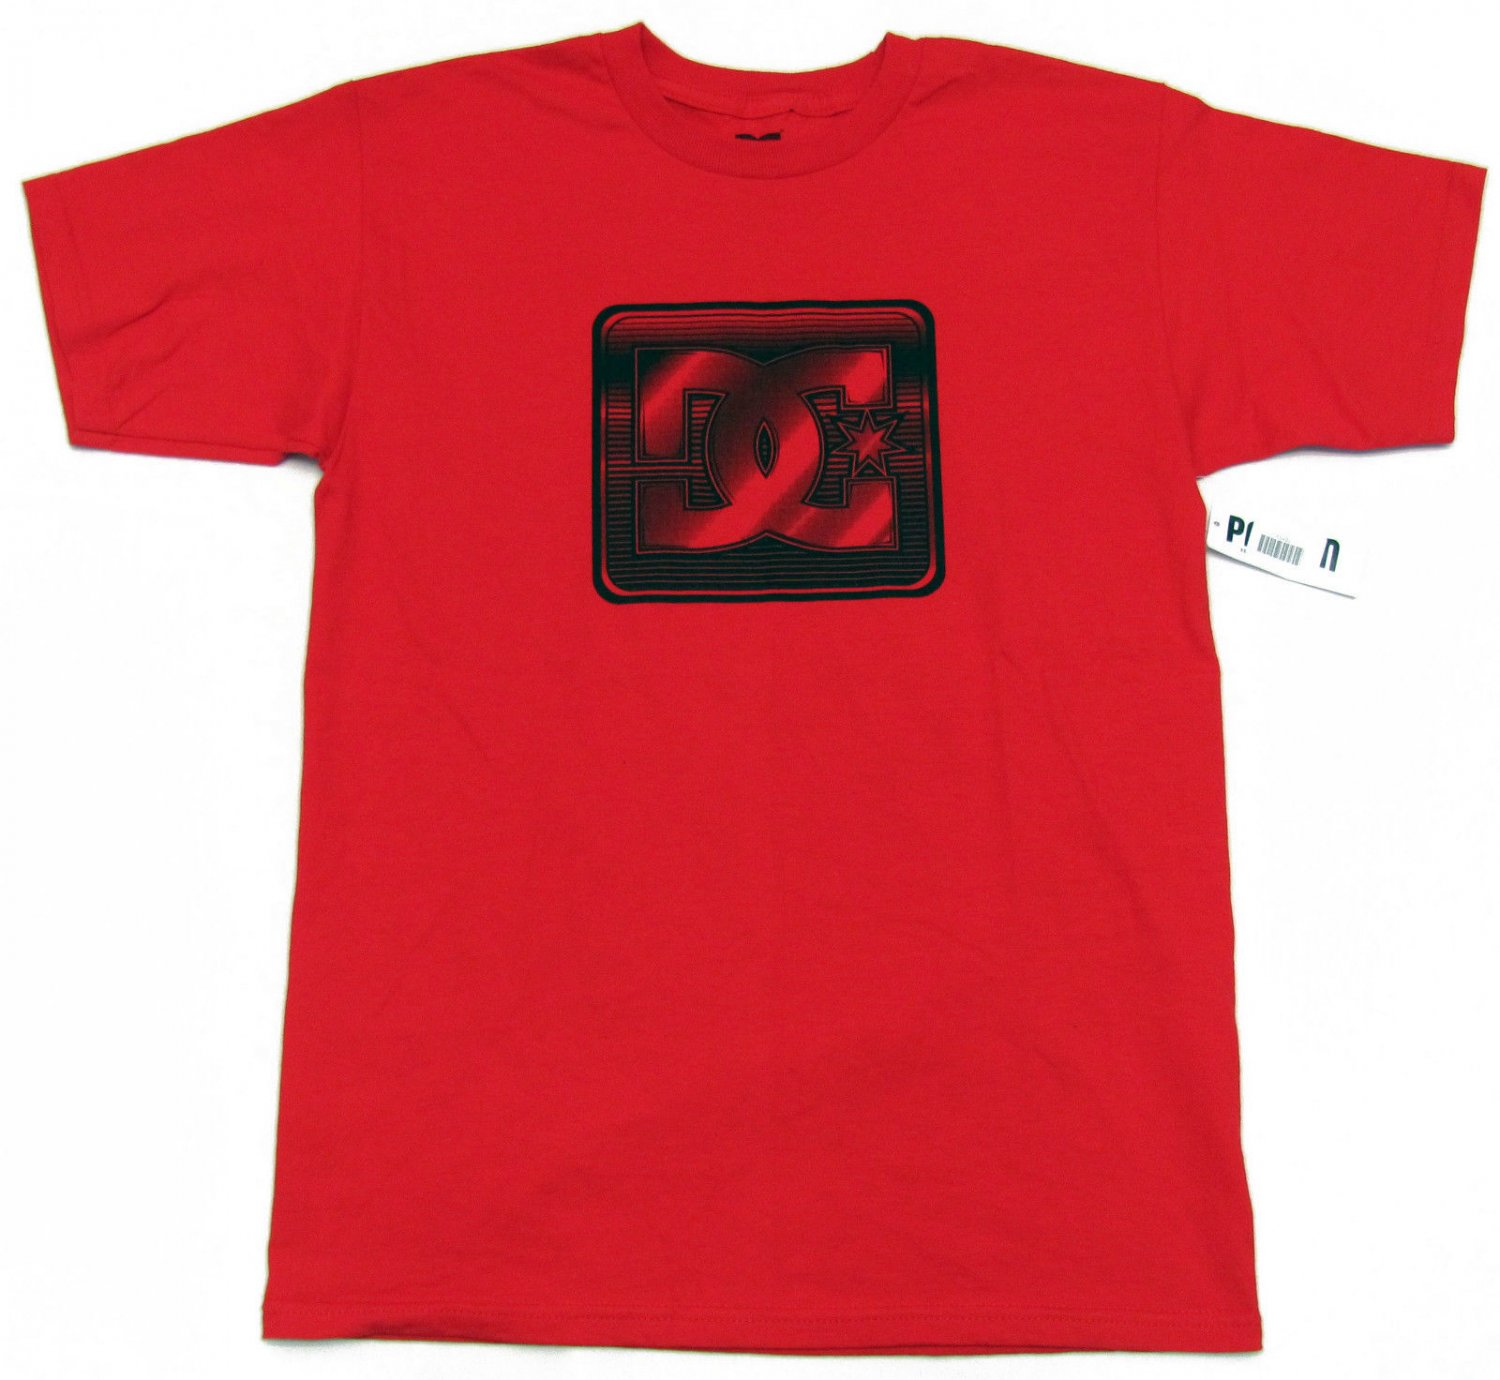 Dc Shoes Mens S Red Tee Shirt with Black Logo Small New